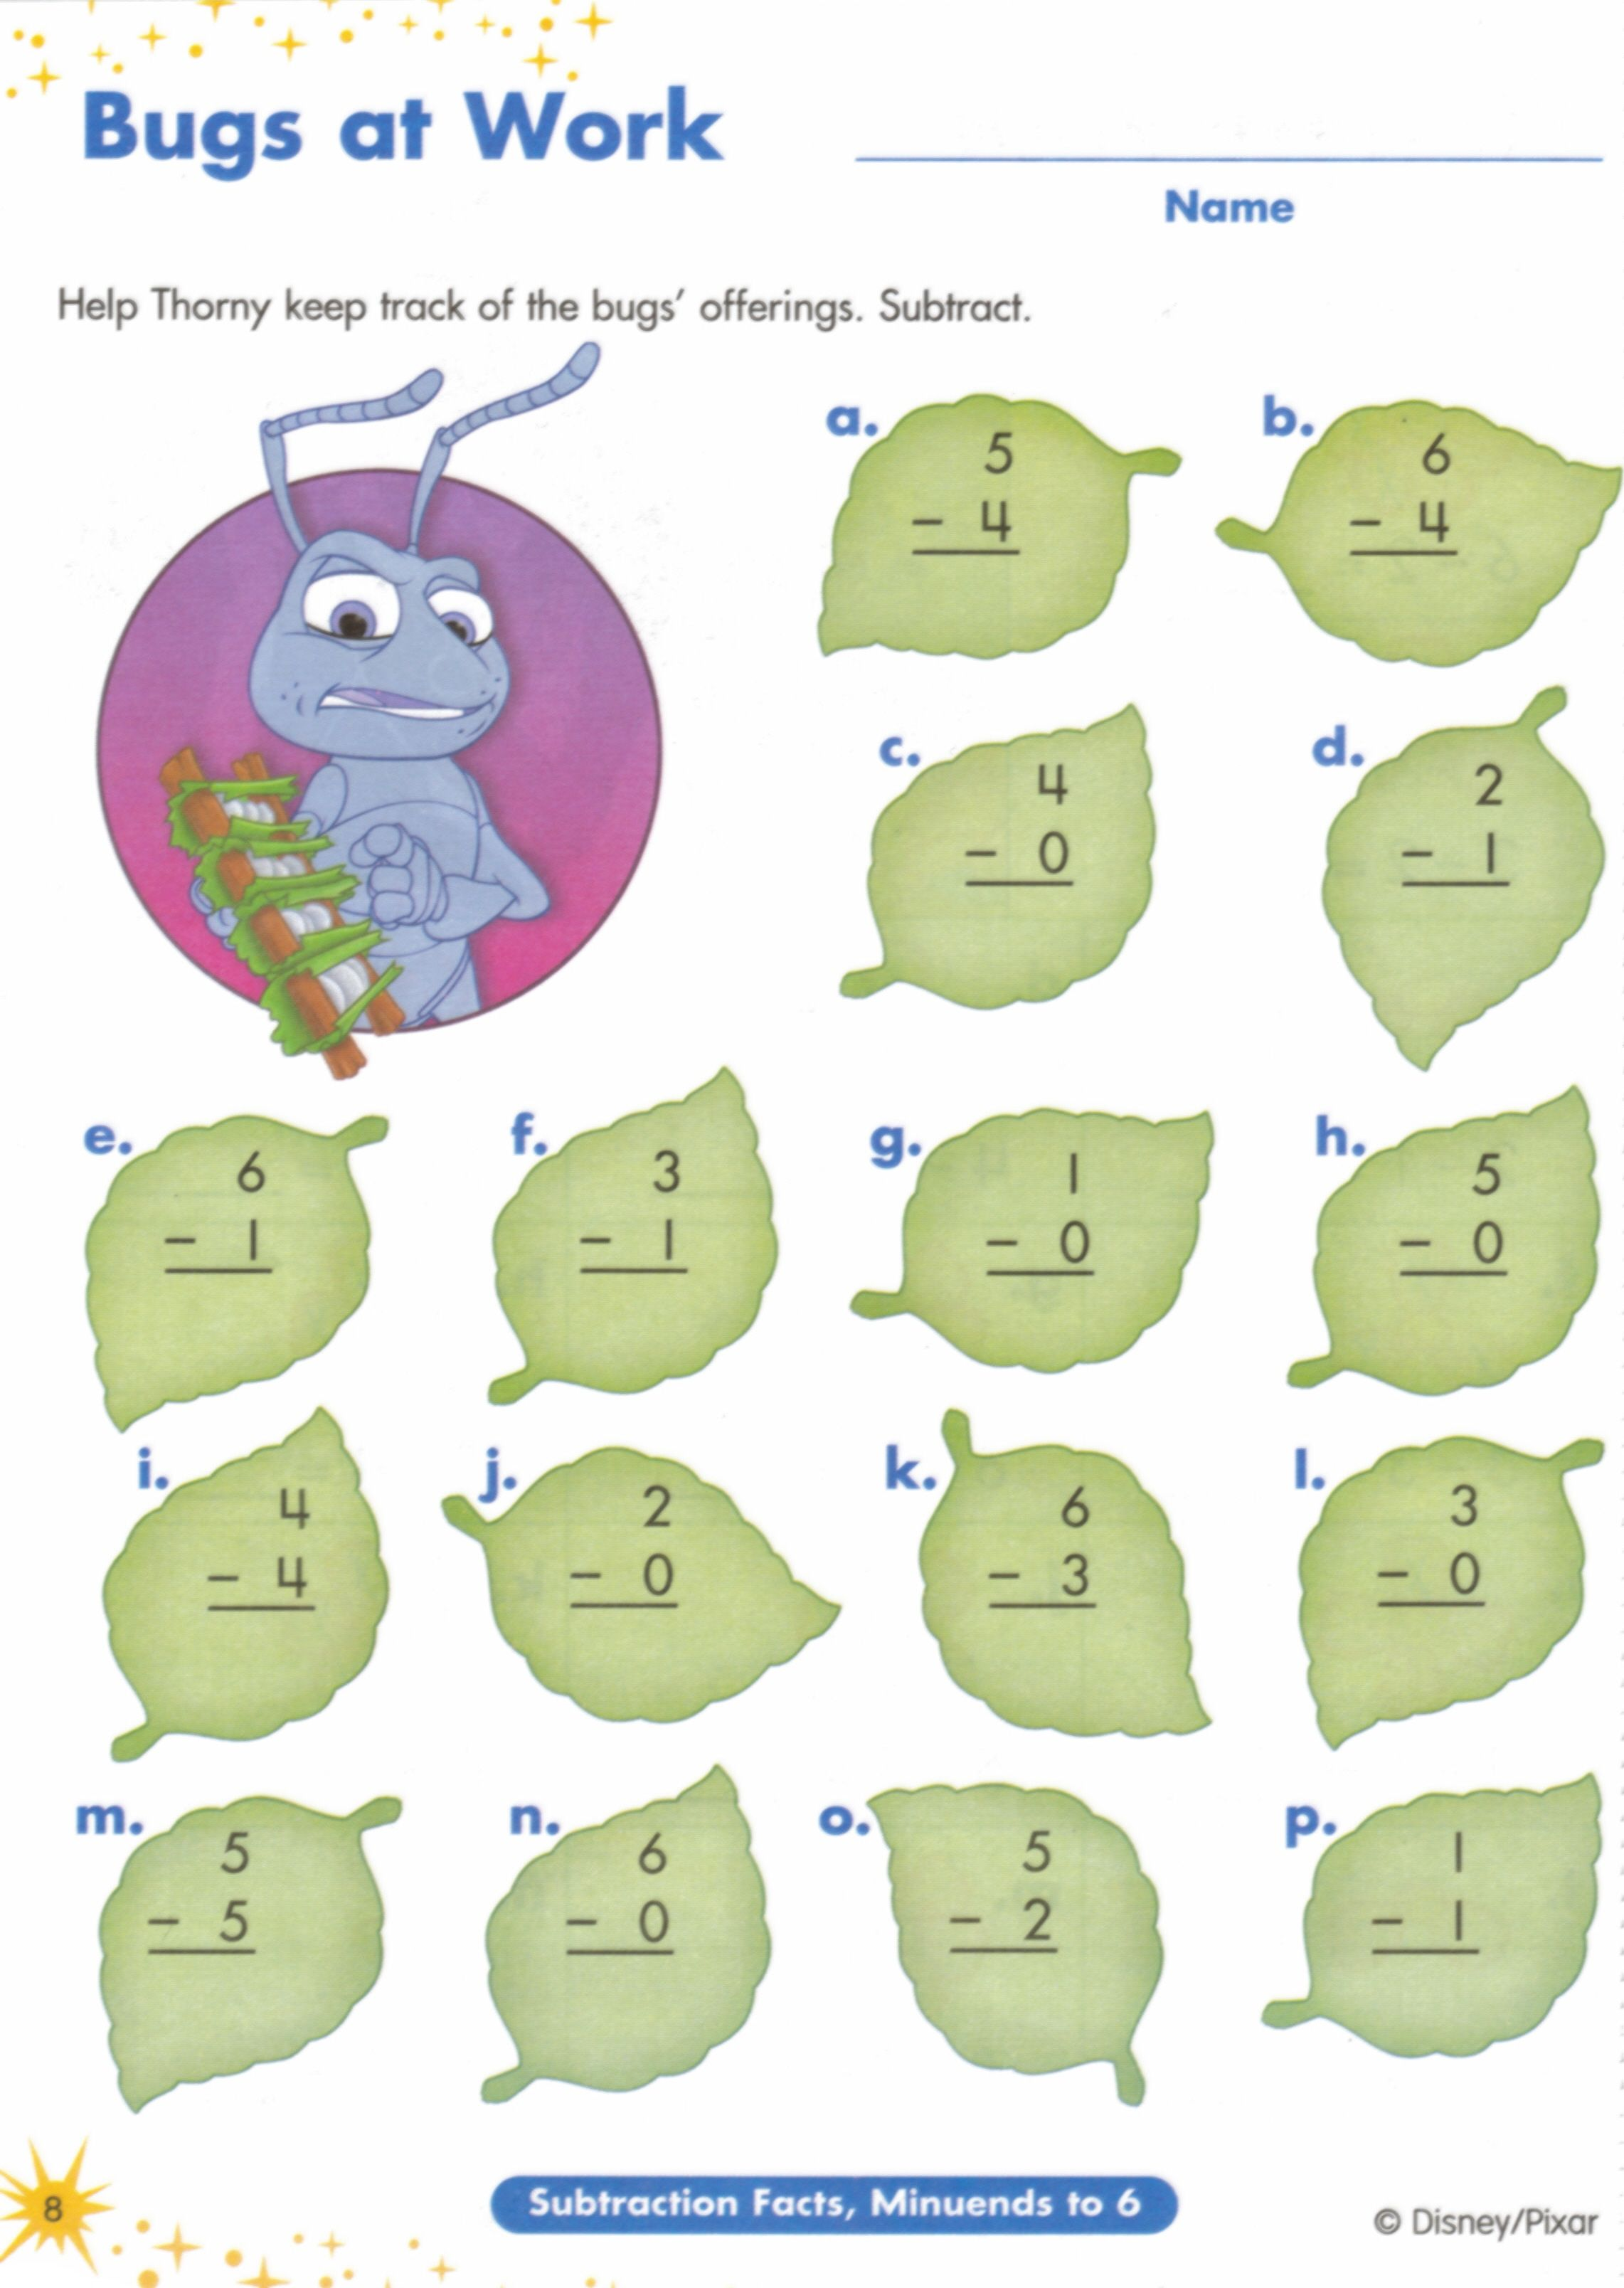 Weirdmailus  Gorgeous  Images About Worksheets On Pinterest  Fun Facts For Kids  With Entrancing  Images About Worksheets On Pinterest  Fun Facts For Kids Earth Day Worksheets And Jungles With Appealing Free Grammar Worksheets For Grade  Also Used To Esl Worksheet In Addition Maths Translation Worksheets And Past Tense Worksheets Ks As Well As Th Grade Word Search Worksheets Additionally Math Worksheets For Th Graders Printable From Pinterestcom With Weirdmailus  Entrancing  Images About Worksheets On Pinterest  Fun Facts For Kids  With Appealing  Images About Worksheets On Pinterest  Fun Facts For Kids Earth Day Worksheets And Jungles And Gorgeous Free Grammar Worksheets For Grade  Also Used To Esl Worksheet In Addition Maths Translation Worksheets From Pinterestcom